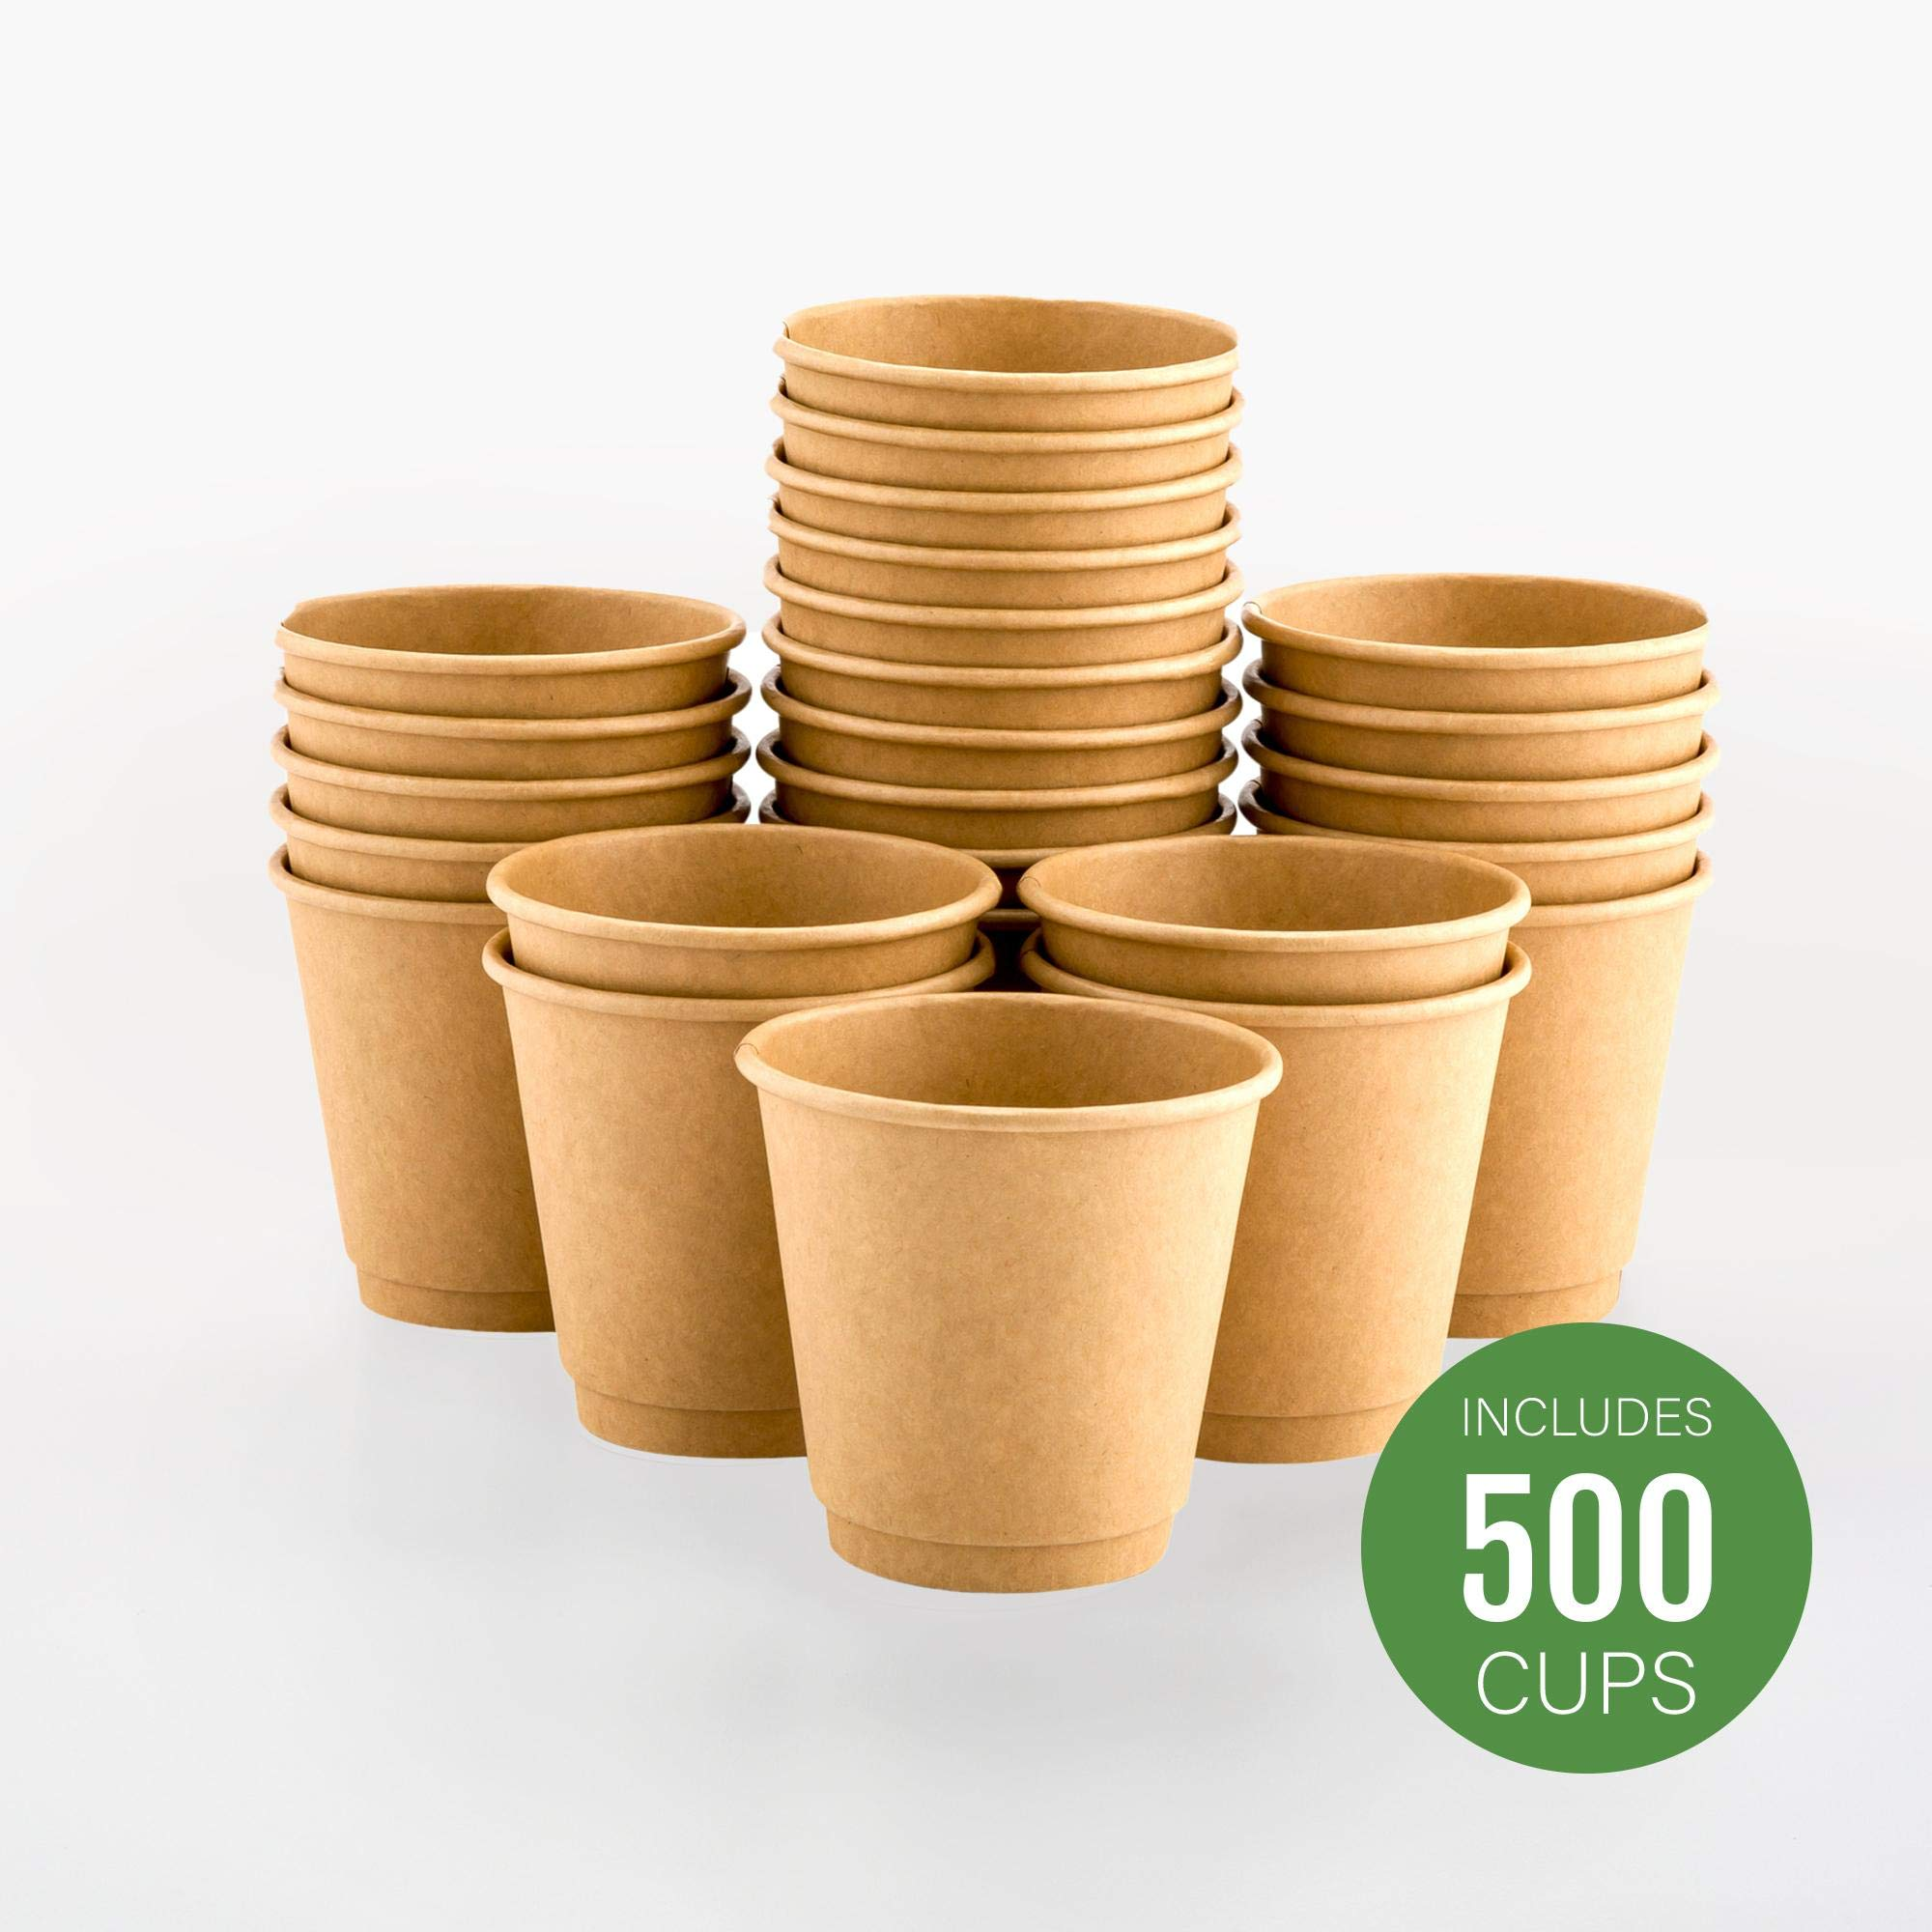 500-CT Disposable Kraft 8-oz Hot Beverage Cups with Double Wall Design: No Need for Sleeves - Perfect for Cafes - Eco Friendly Recyclable Paper - Insulated - Wholesale Takeout Coffee Cup